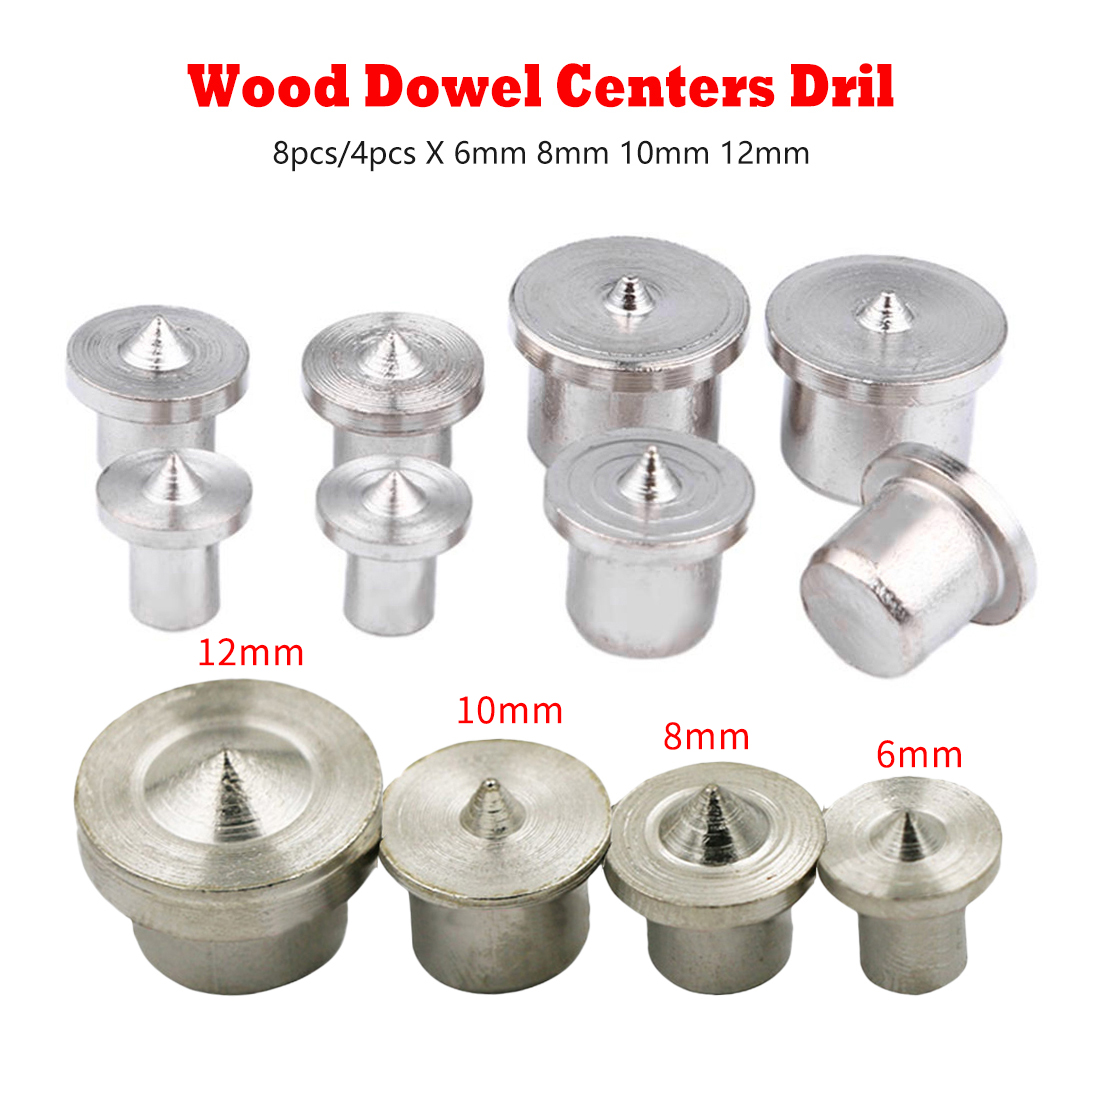 Solid Type 6mm 8mm10mm 12mm 8pcs/4pcs Dowel Pins Center Point Drill Woodworking Dowel Tenon Center Drill For Woodworking